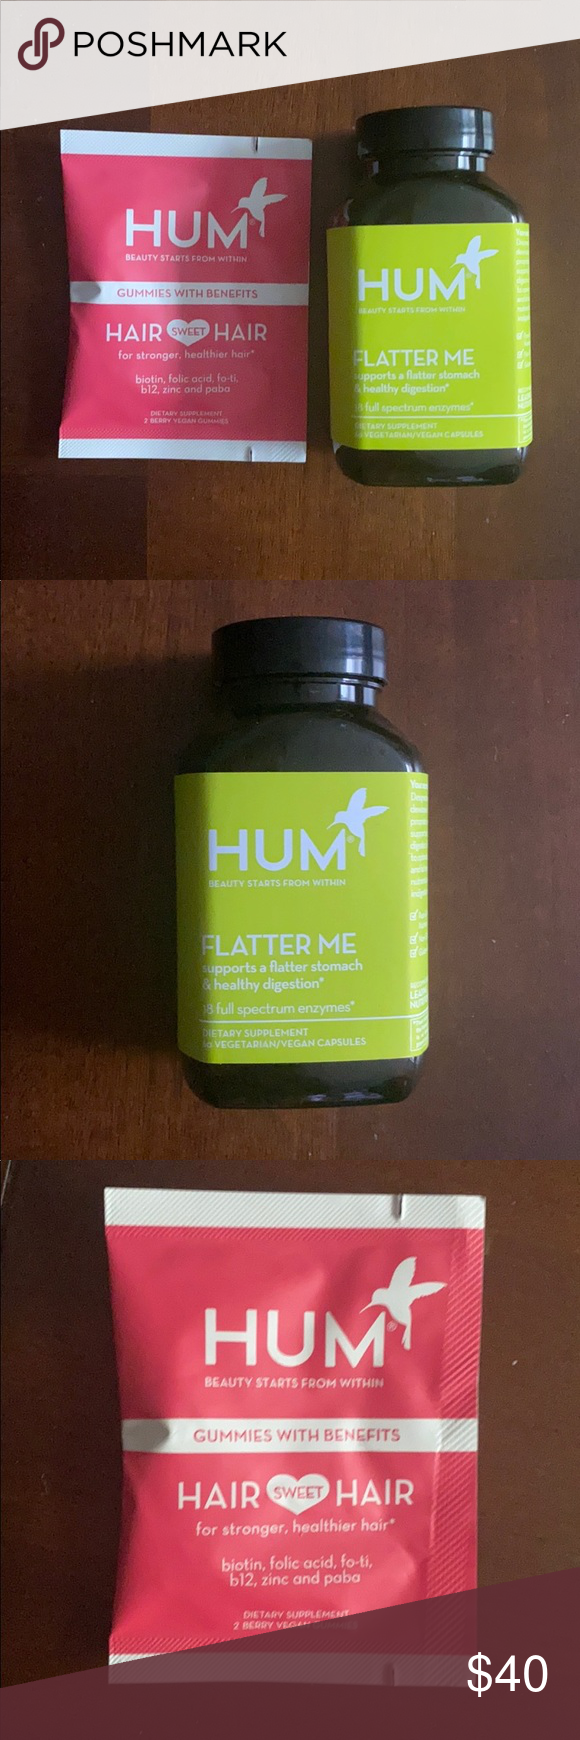 NEW HUM Dietary Supplements for Stomach and Hair NWT (With